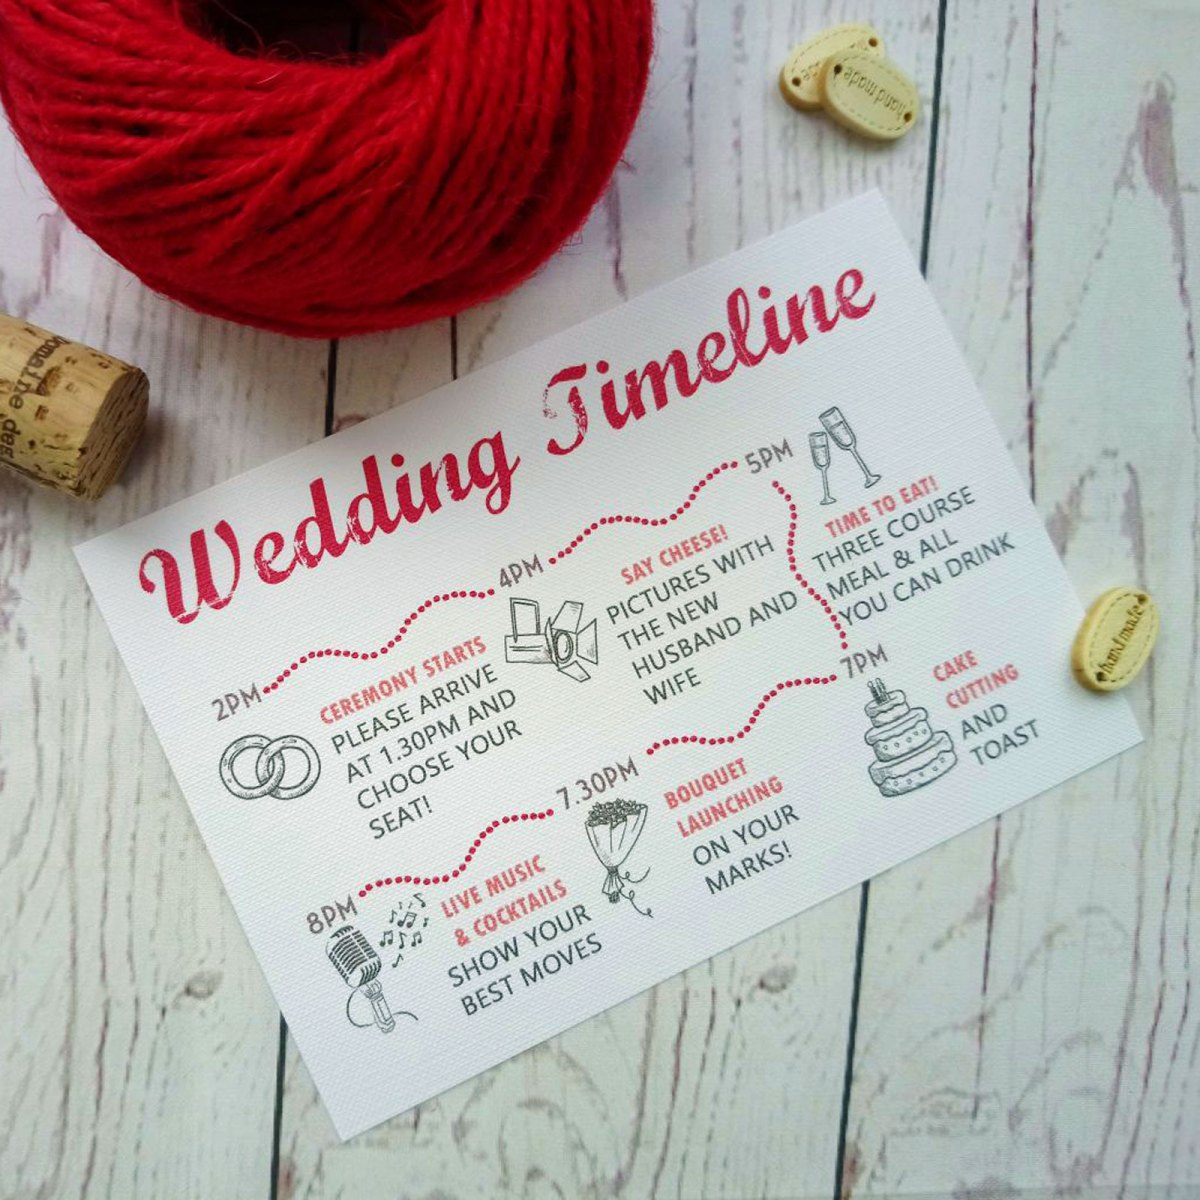 Watercolour Flowers Wedding Timeline in red and pink shades